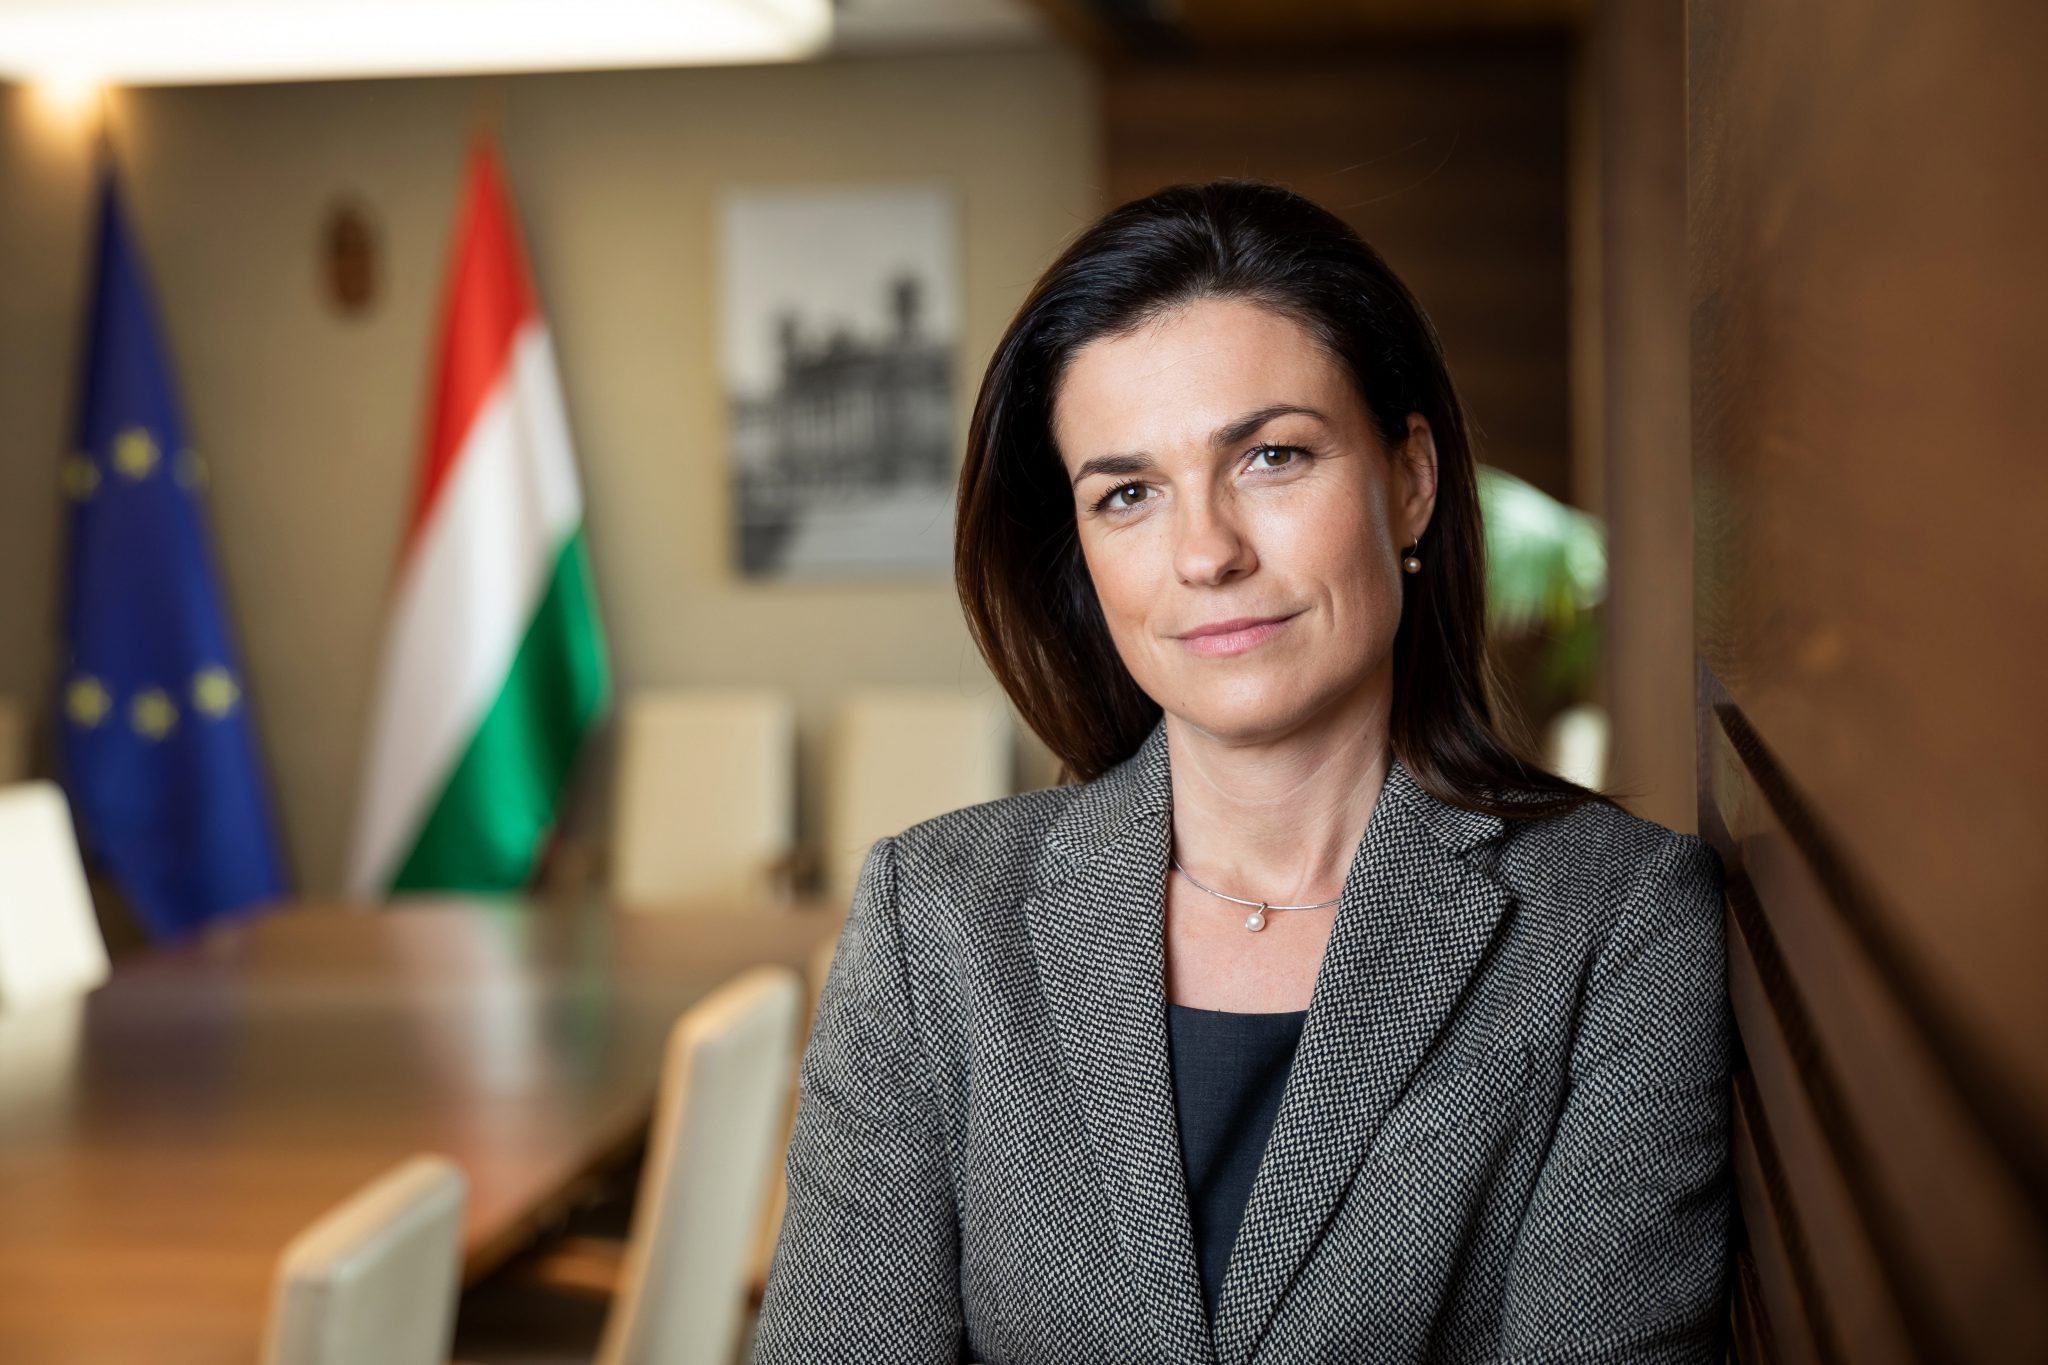 Coronavirus – Justice Minister: EC Confirms Hungary Epidemic Bill Consistent with EU Law post's picture